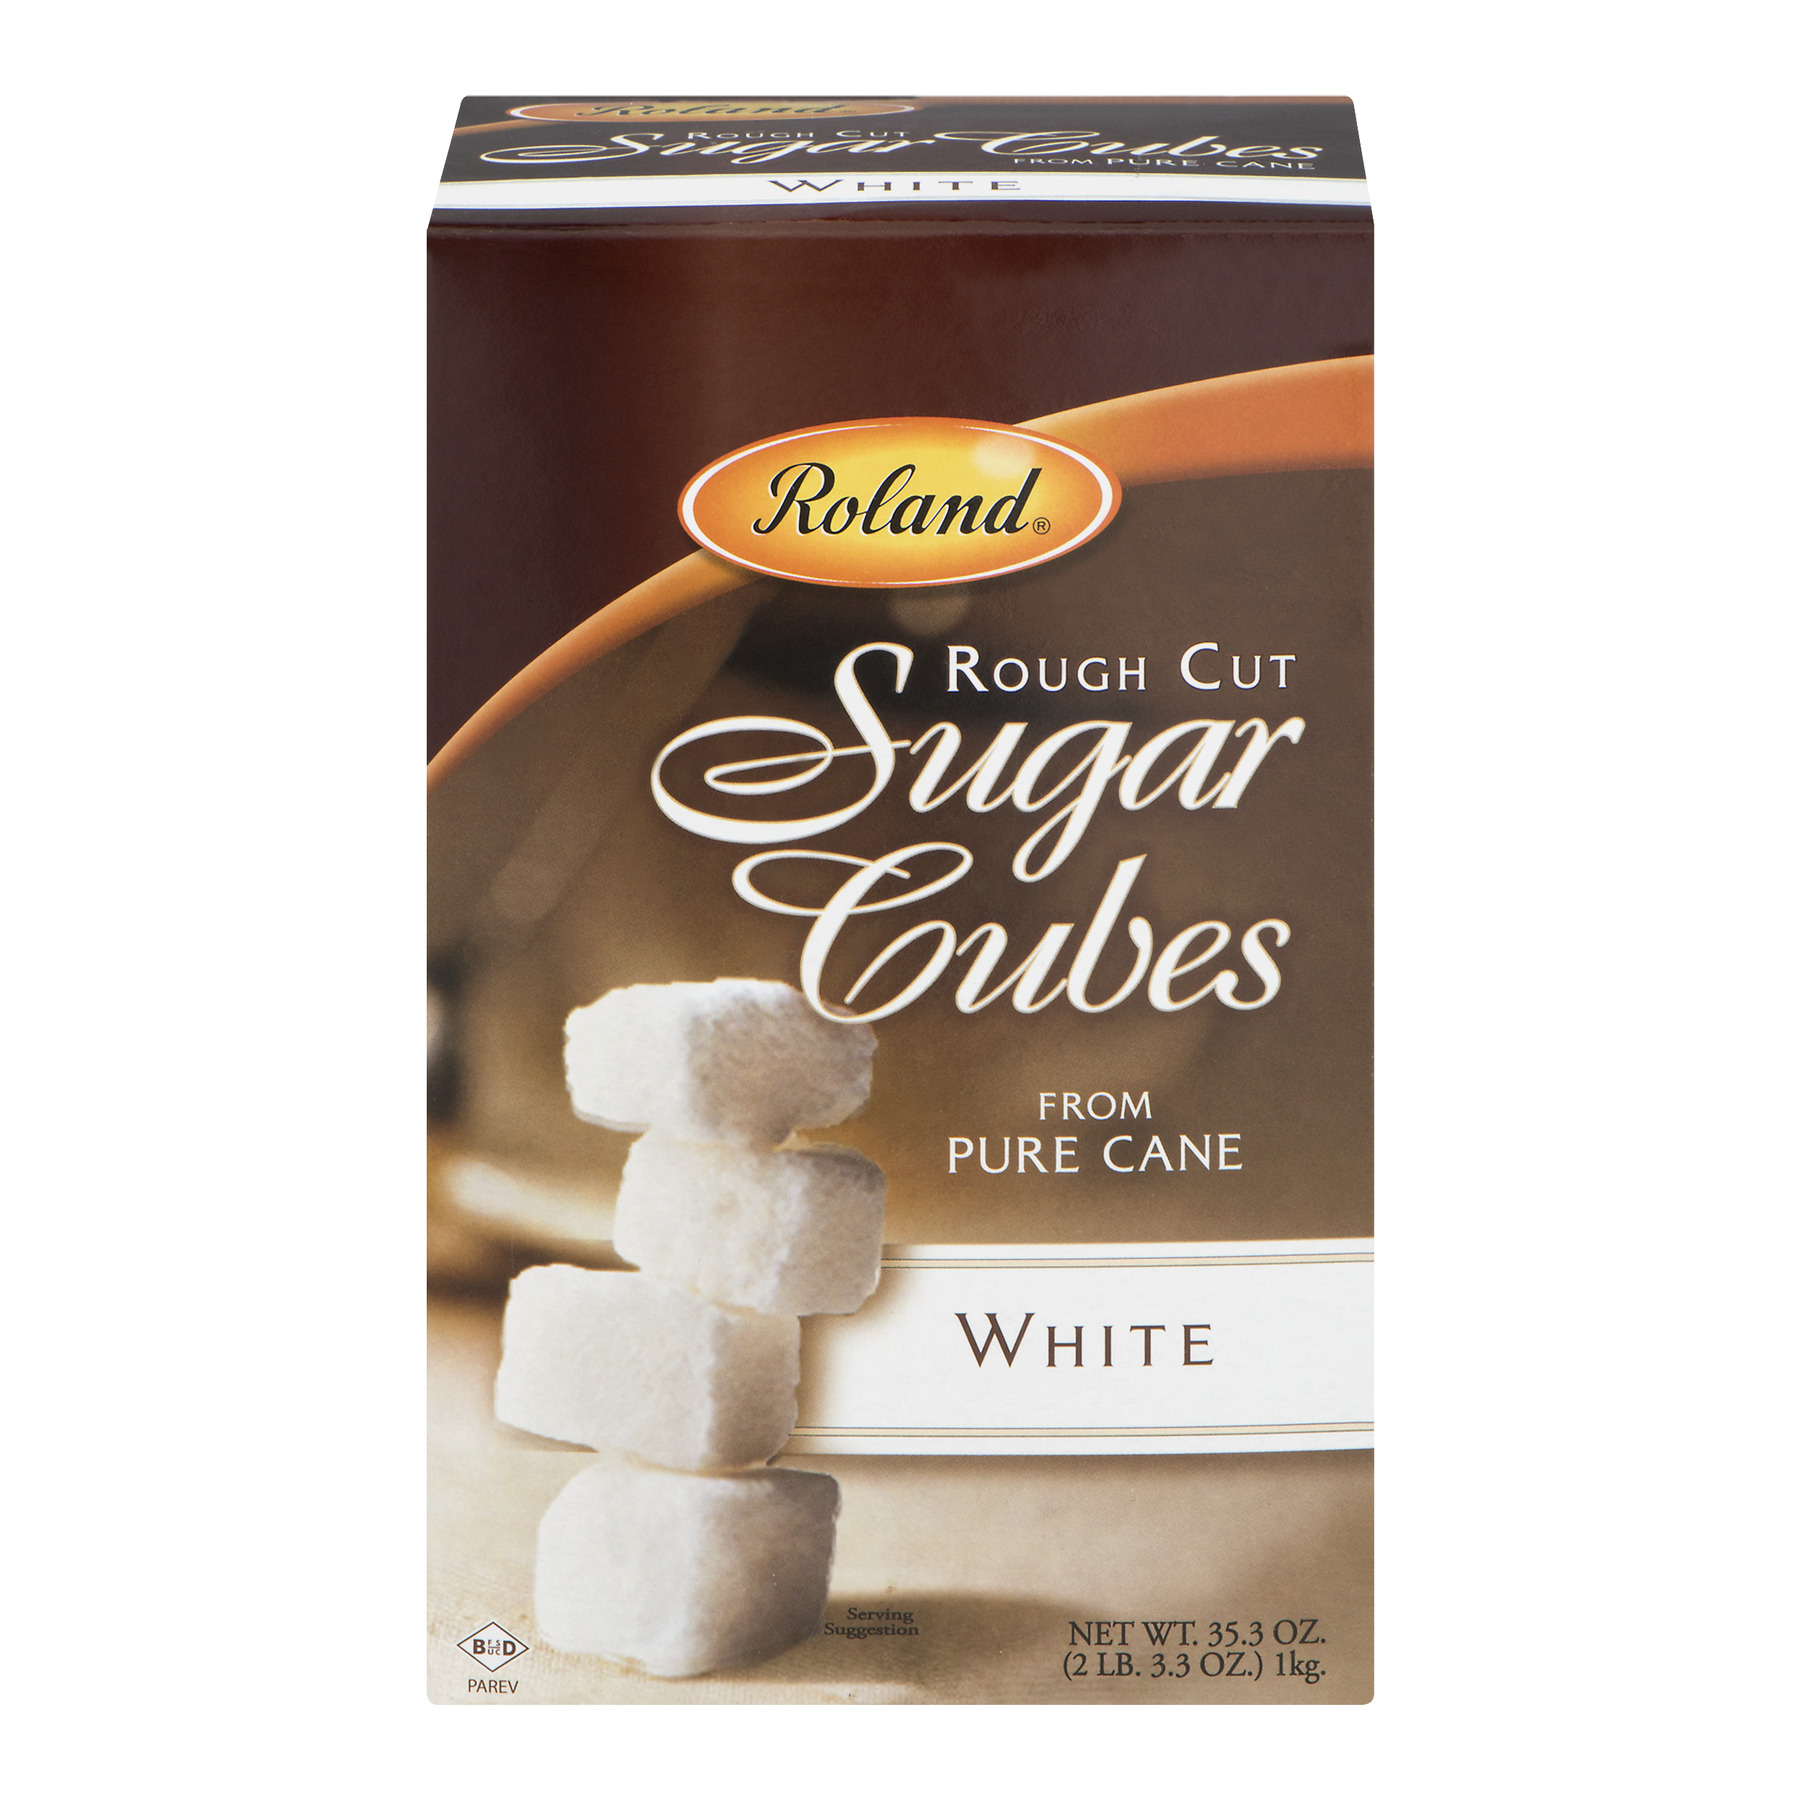 Roland Rough Cut Sugar Cubes From Pure Cane White, 35.3 OZ